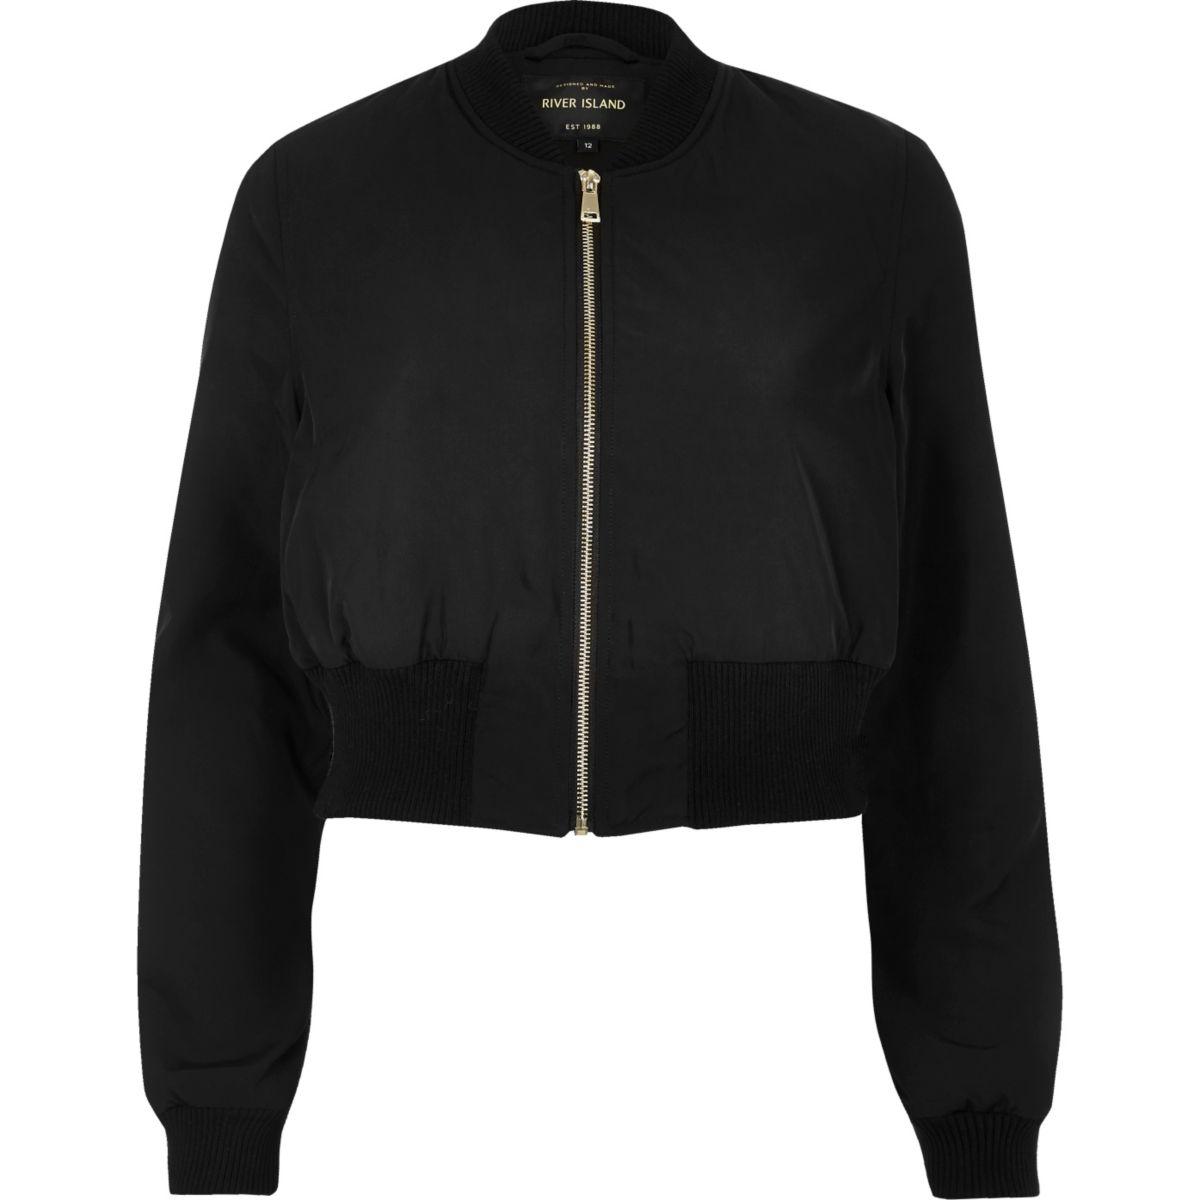 Crop jackets for women